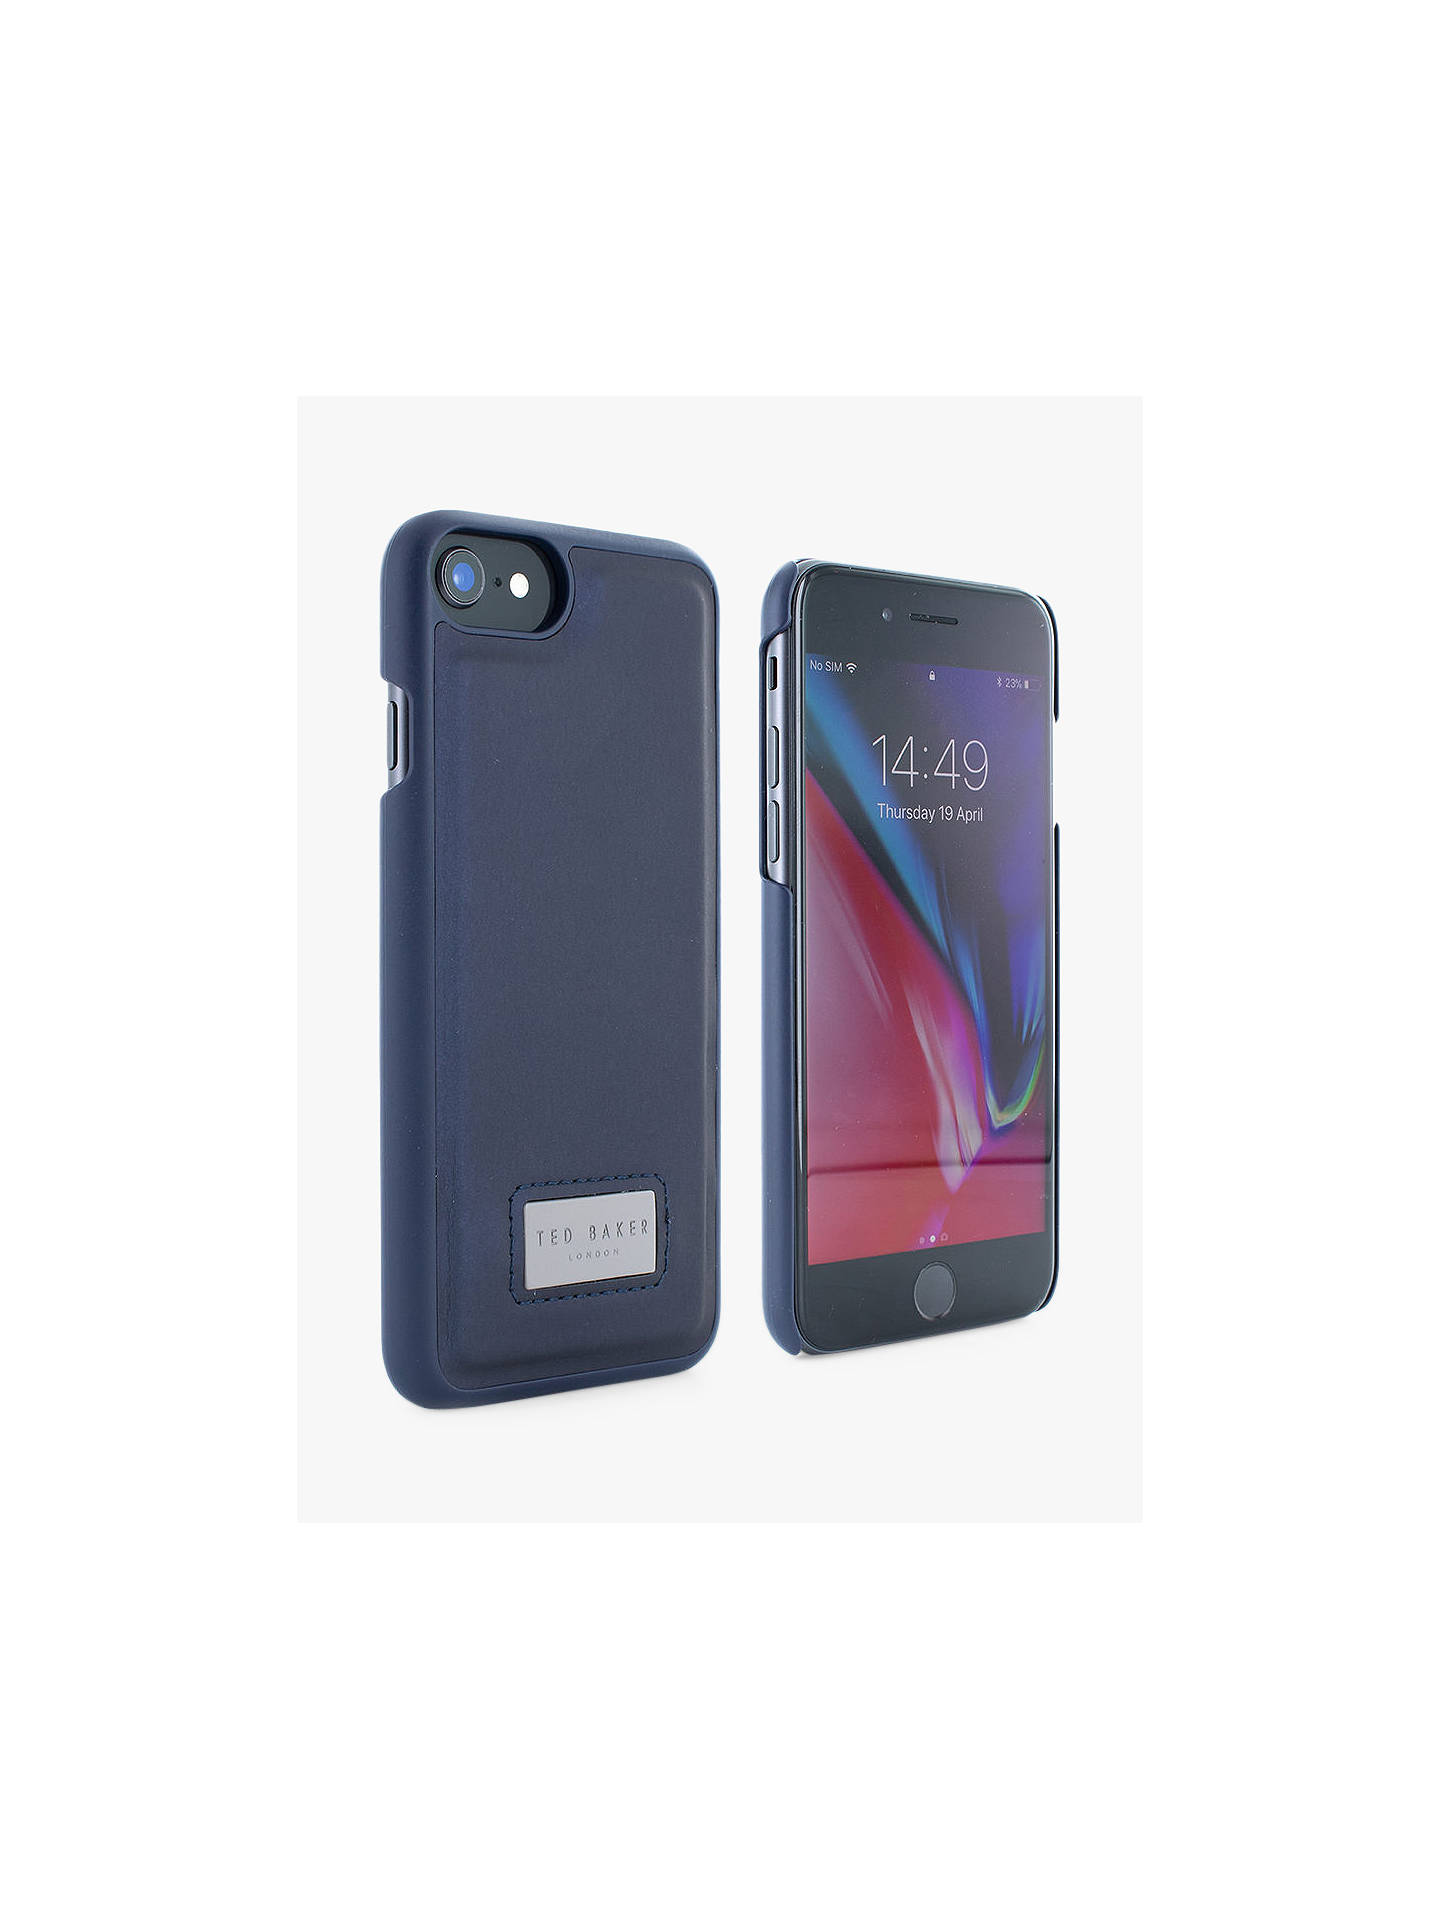 Buy Ted Baker Snakke Hard Shell Case for iPhone 6/7 and 8 Online at johnlewis.com